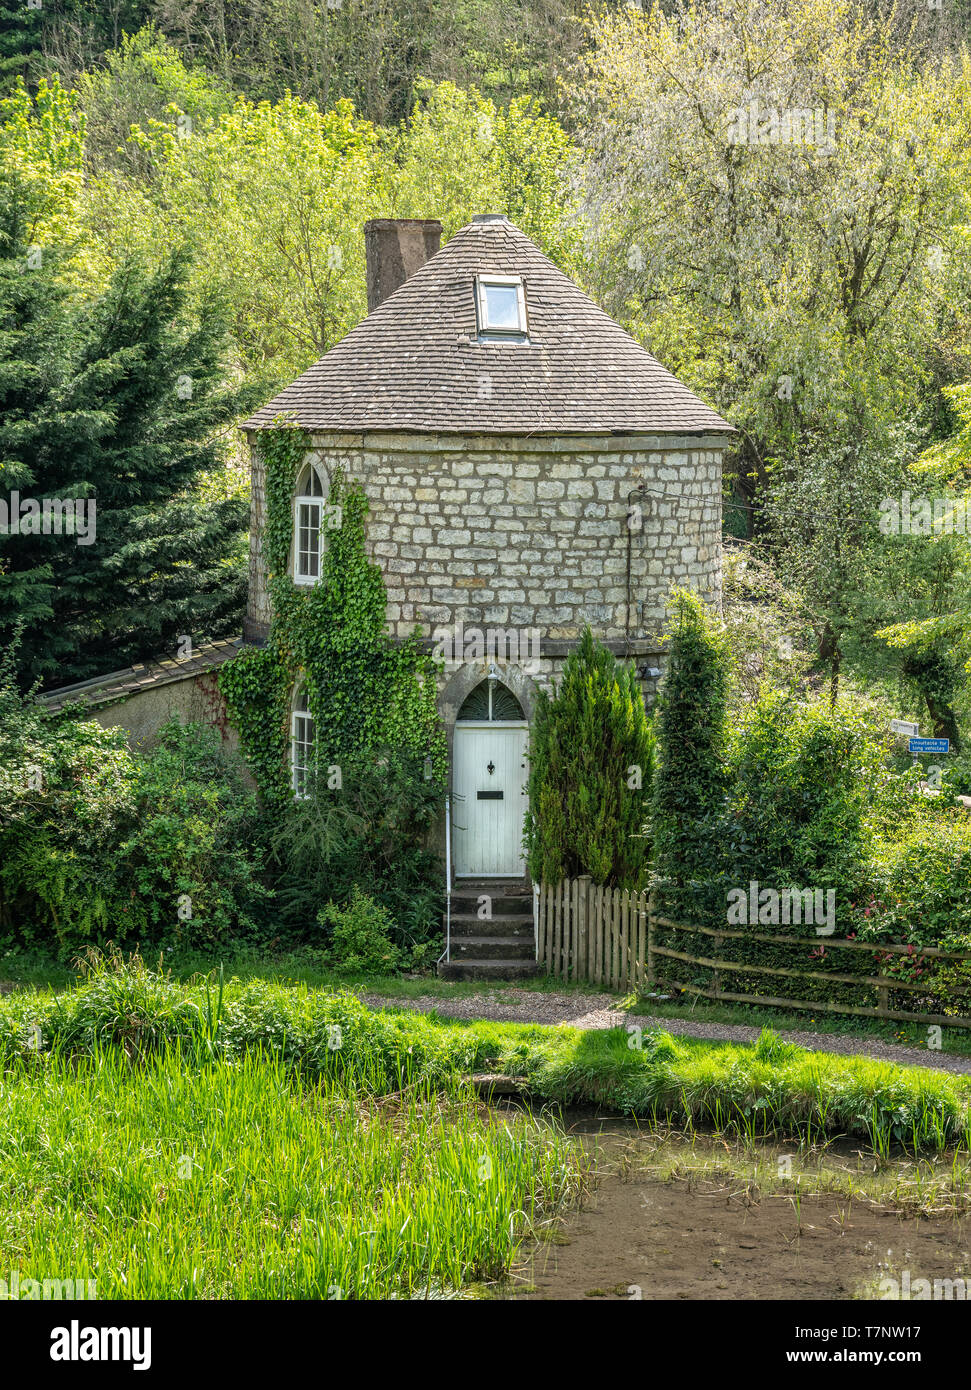 Chalford Roundhouse a listed building on the Severn Thames Canal, Stroud, The Cotswolds, United Kingdom - Stock Image